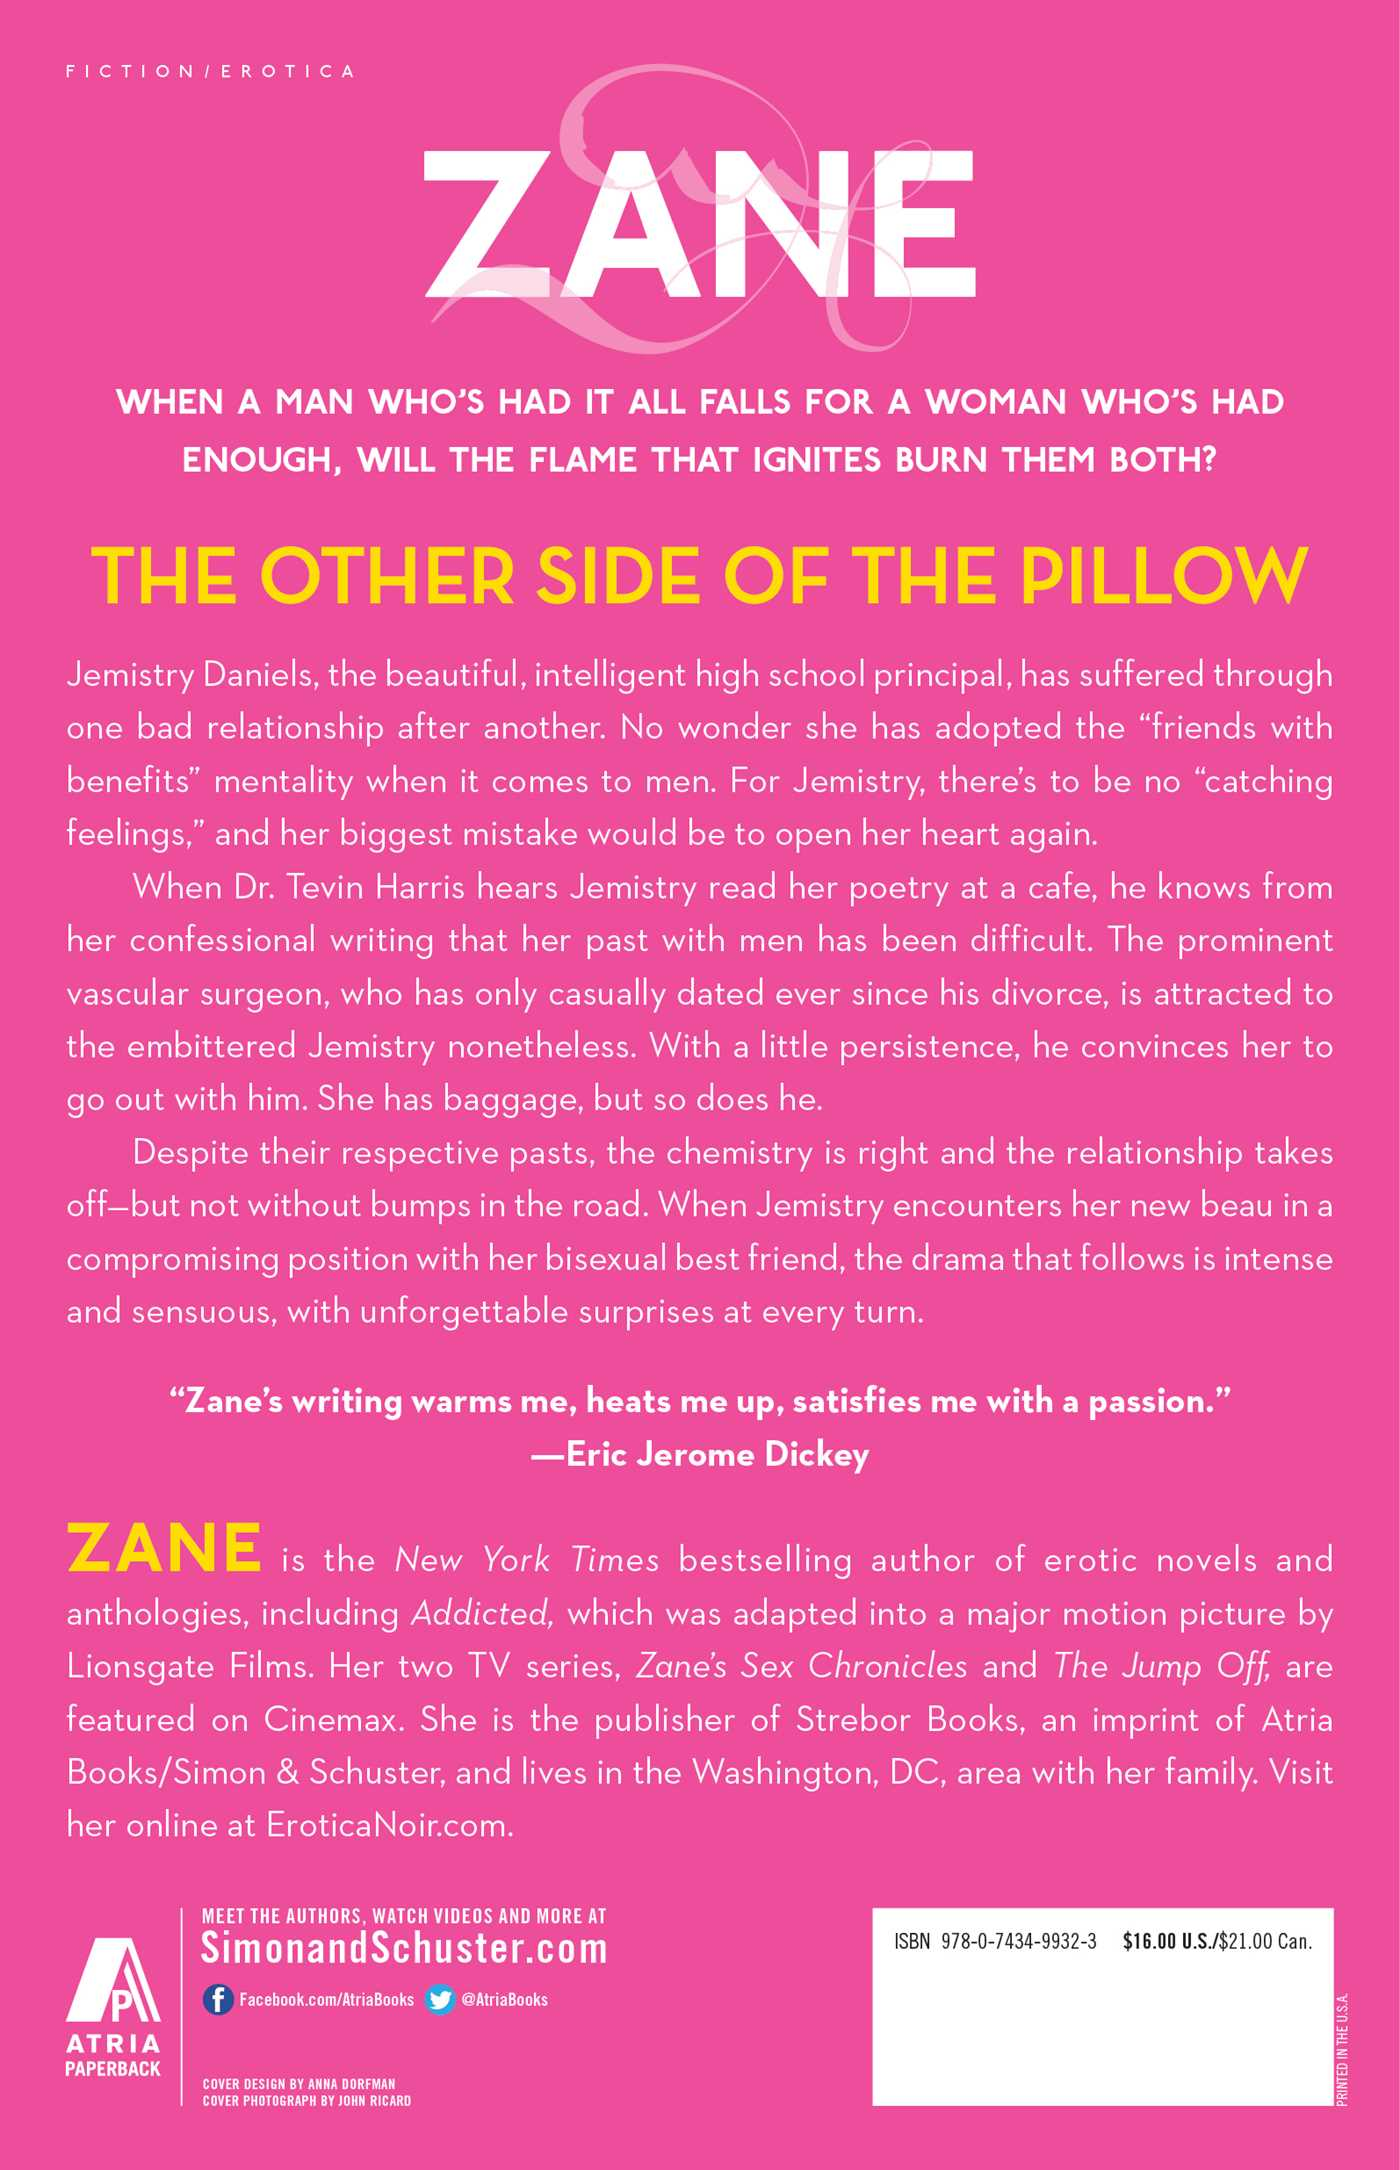 The other side of the pillow book by zane official publisher zanes the other side of the pillow 9780743499323 hr back fandeluxe Choice Image